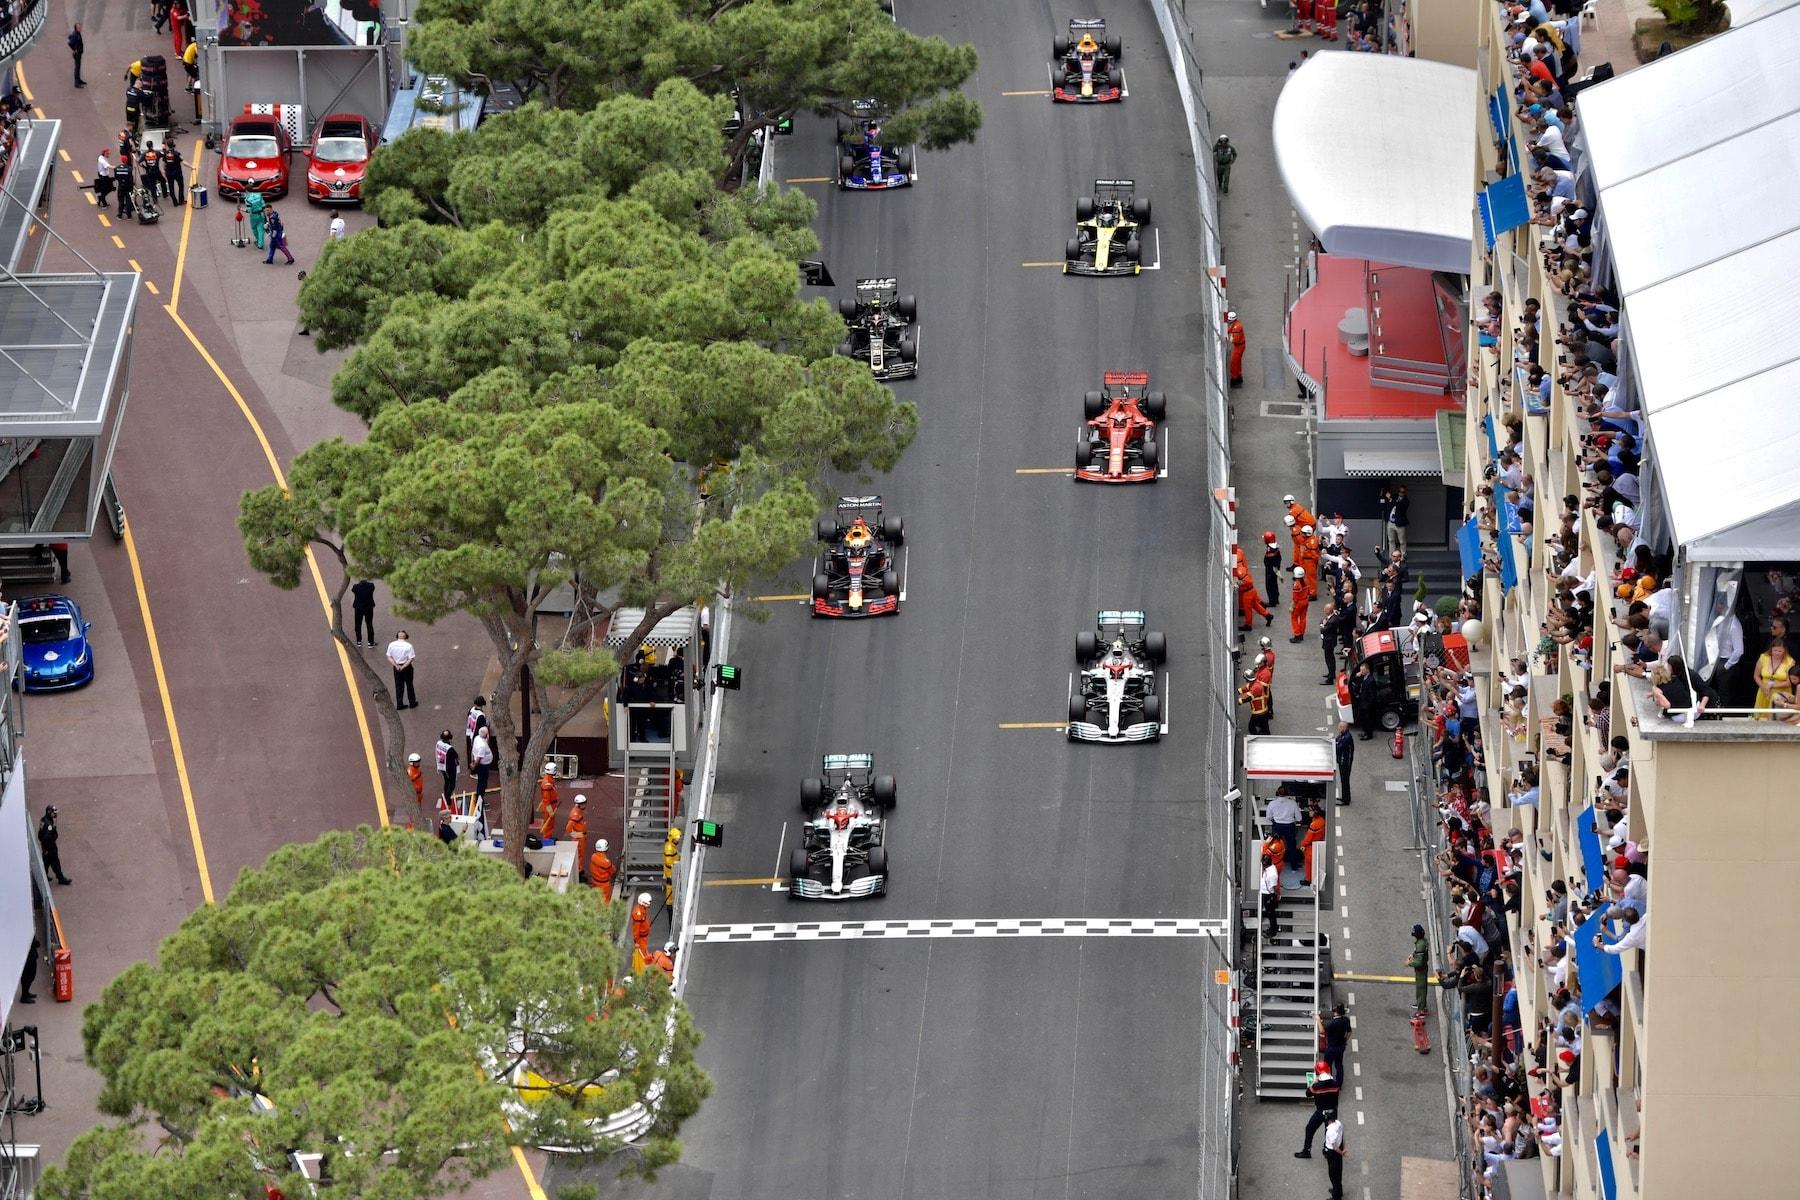 3 2019 Monaco GP SUNDAY 3.jpg